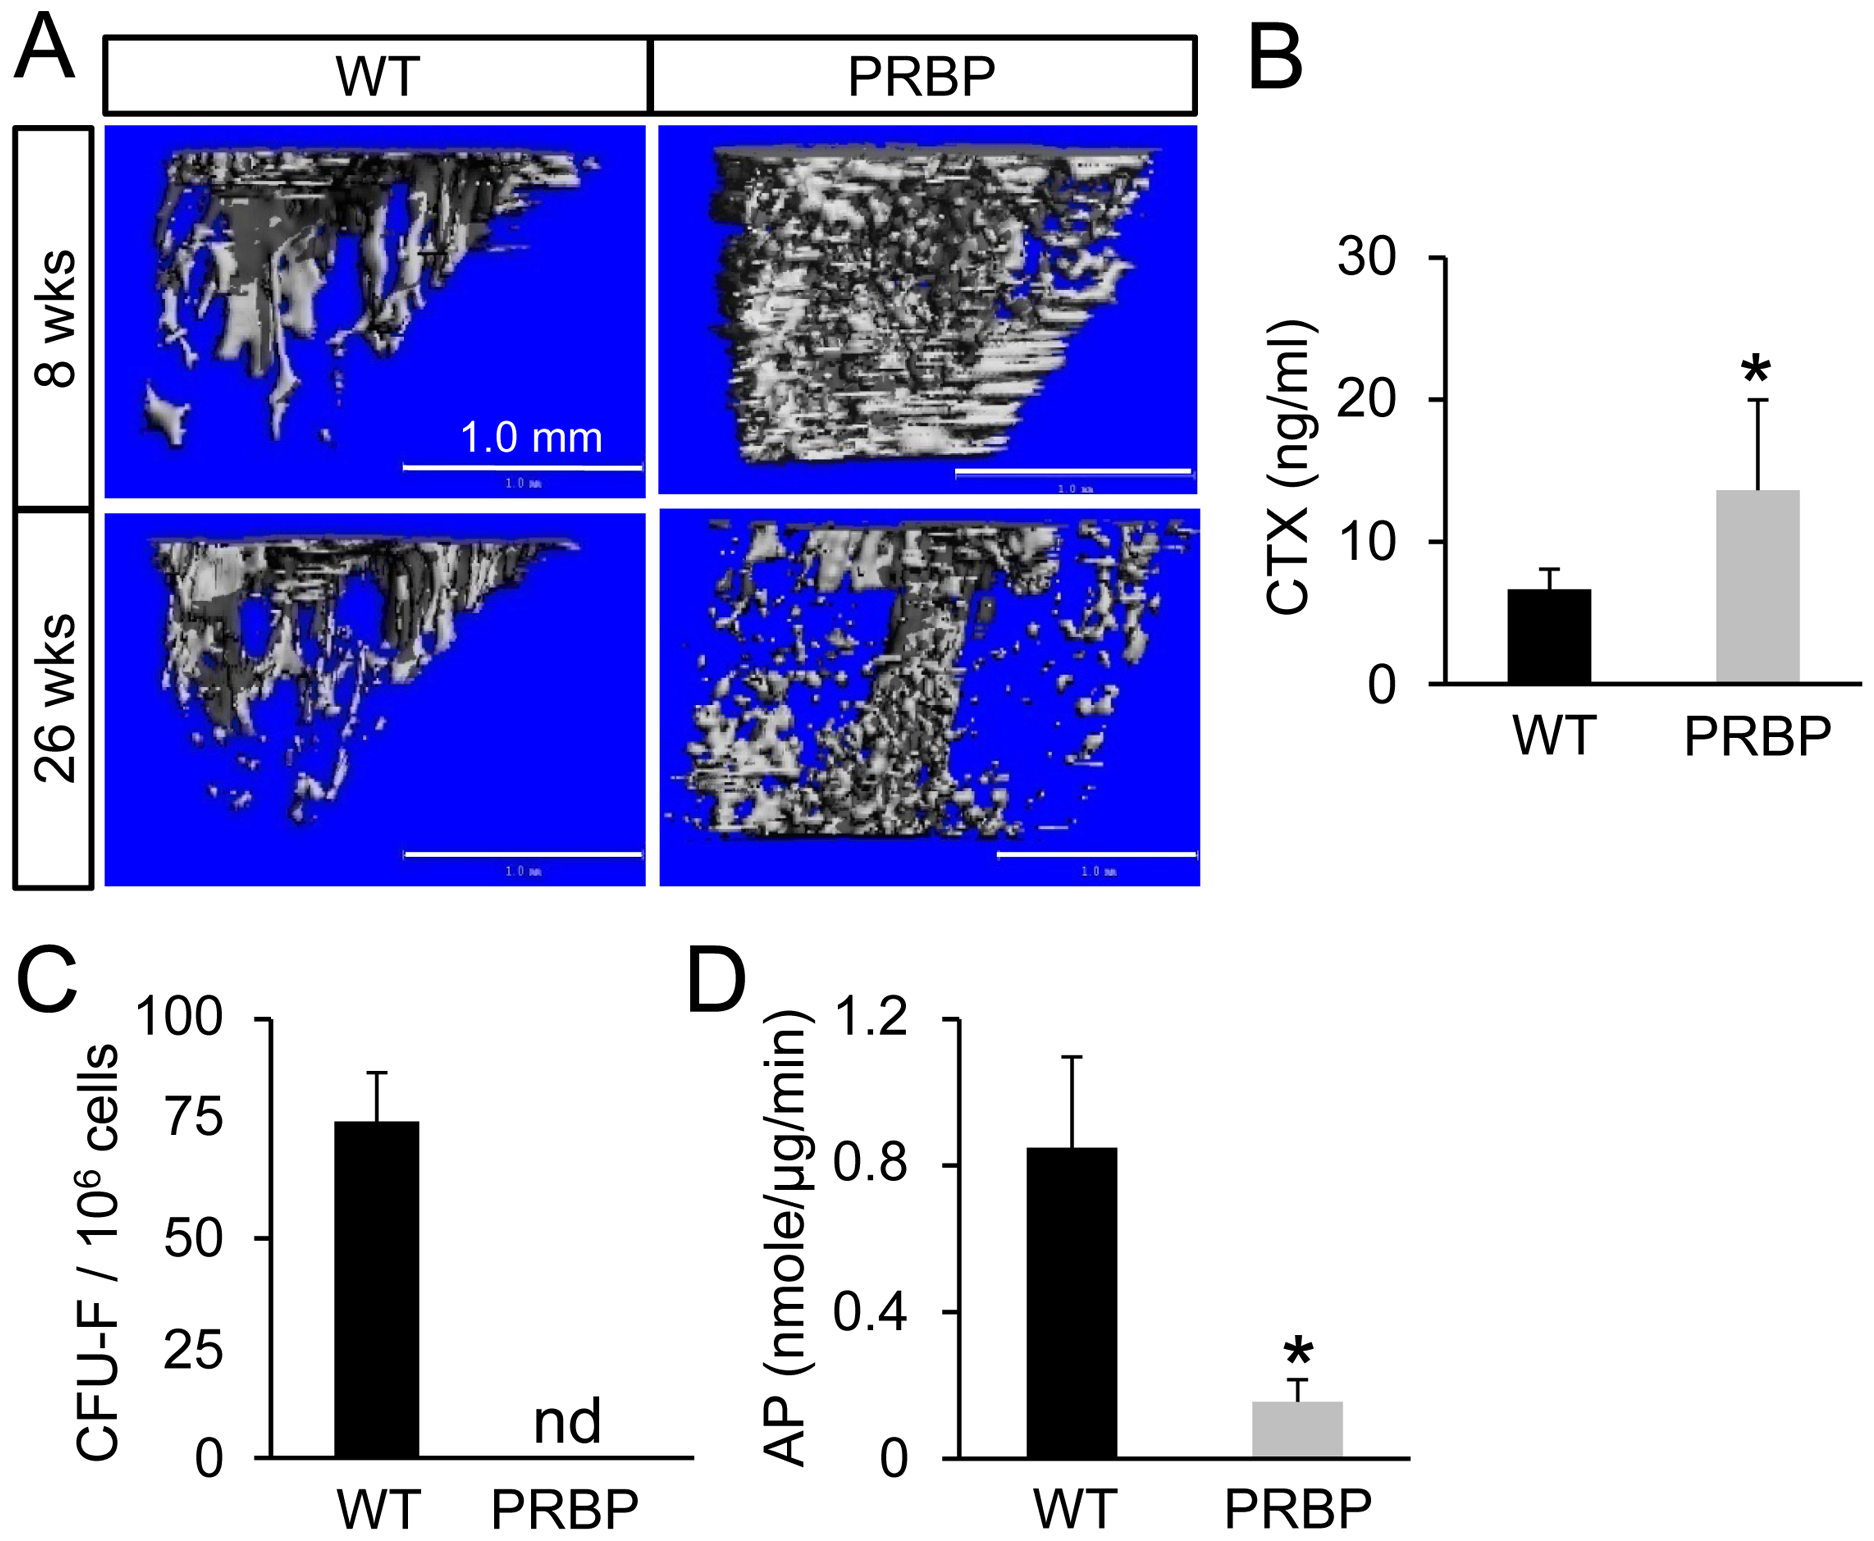 Bone loss in PRBP mice at 26 weeks of age.